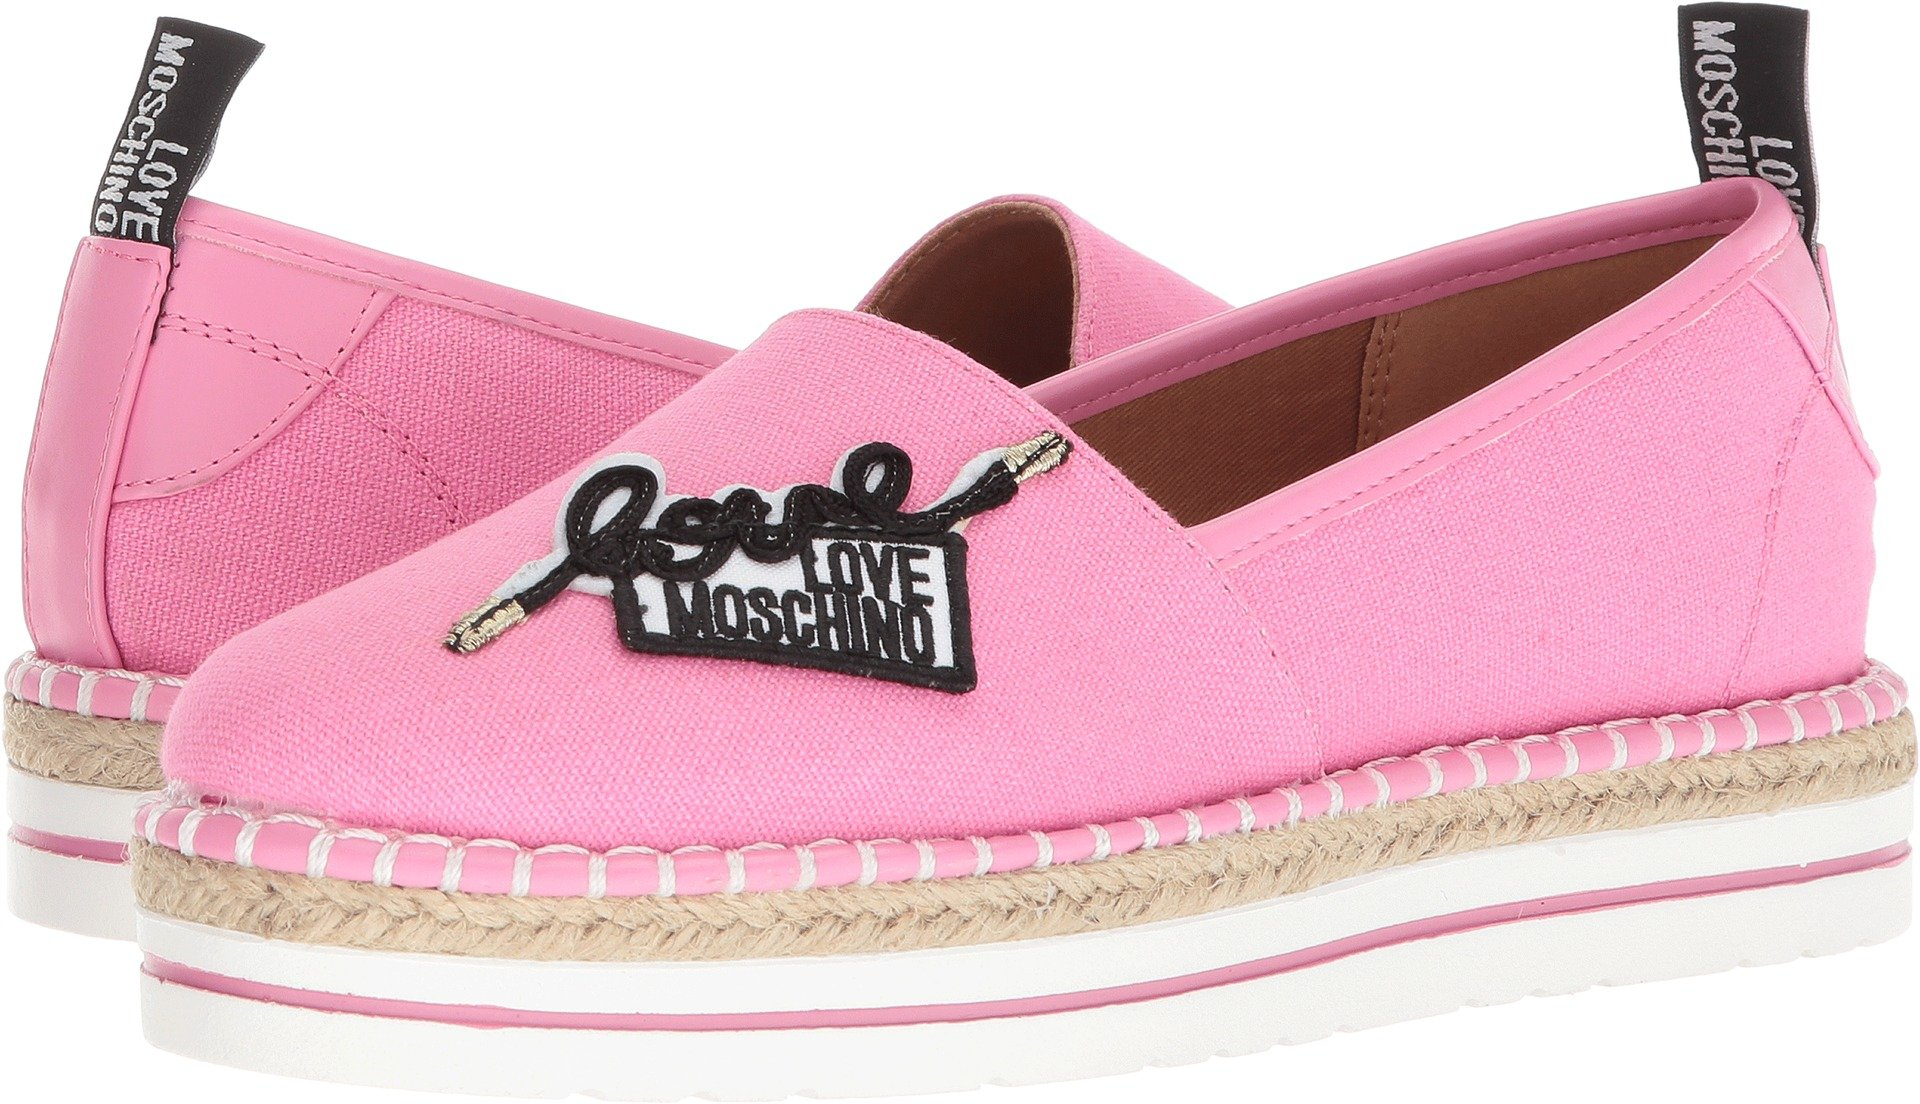 Love Moschino Women's Canvas Espadrille Pink 38 M EU